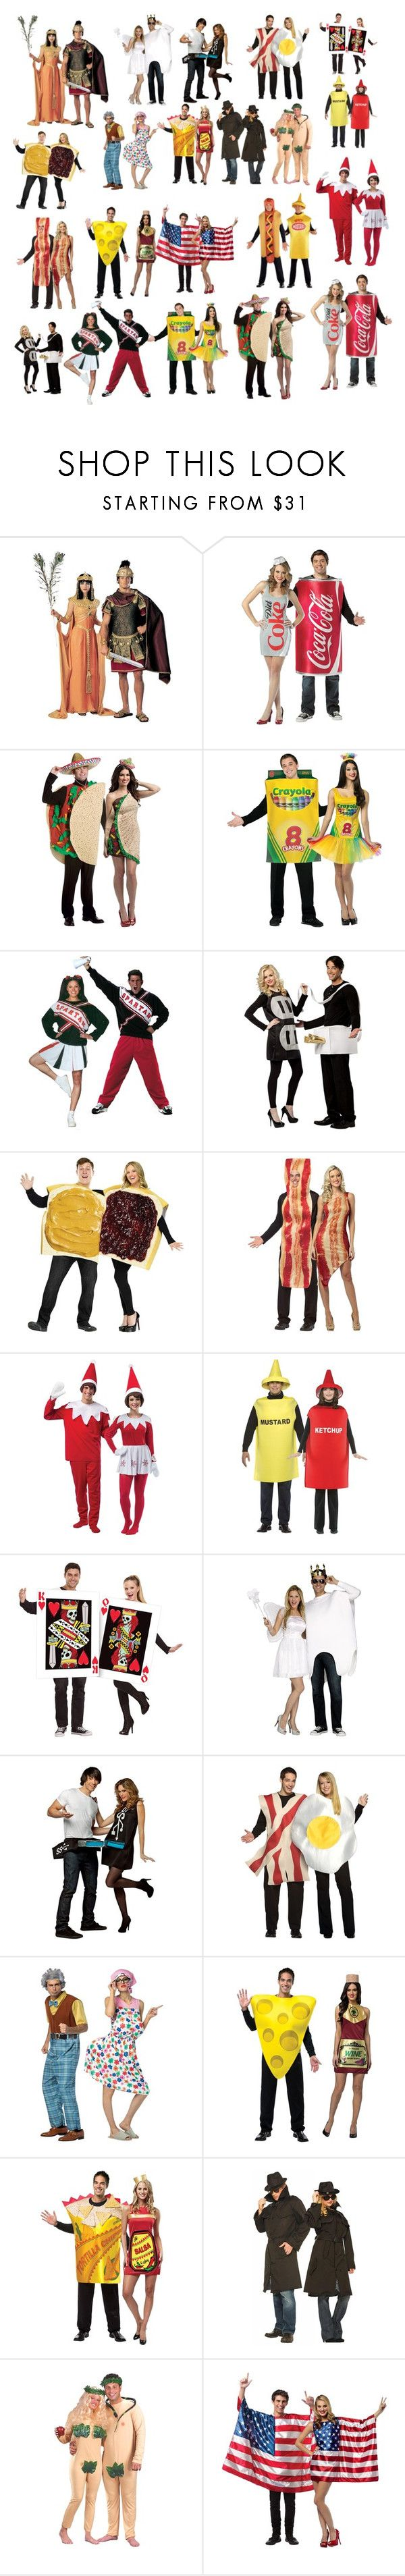 """""""Couples Costume"""" by galactic-girl ❤ liked on Polyvore featuring Rubie's Costume Co. and Rasta Imposta"""